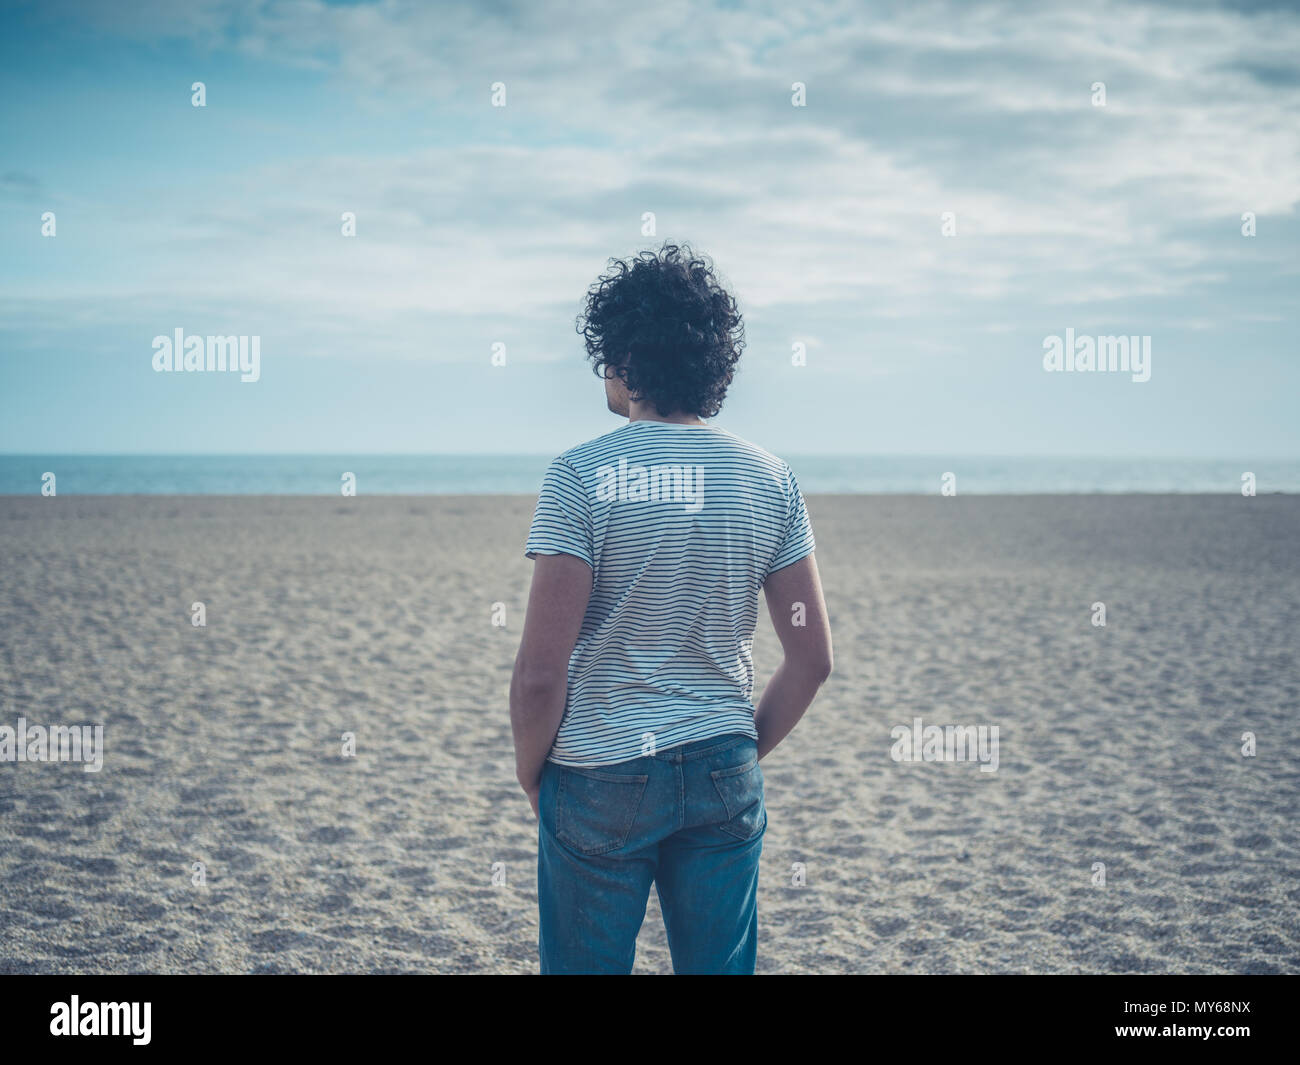 A young man is standing on the beach - Stock Image